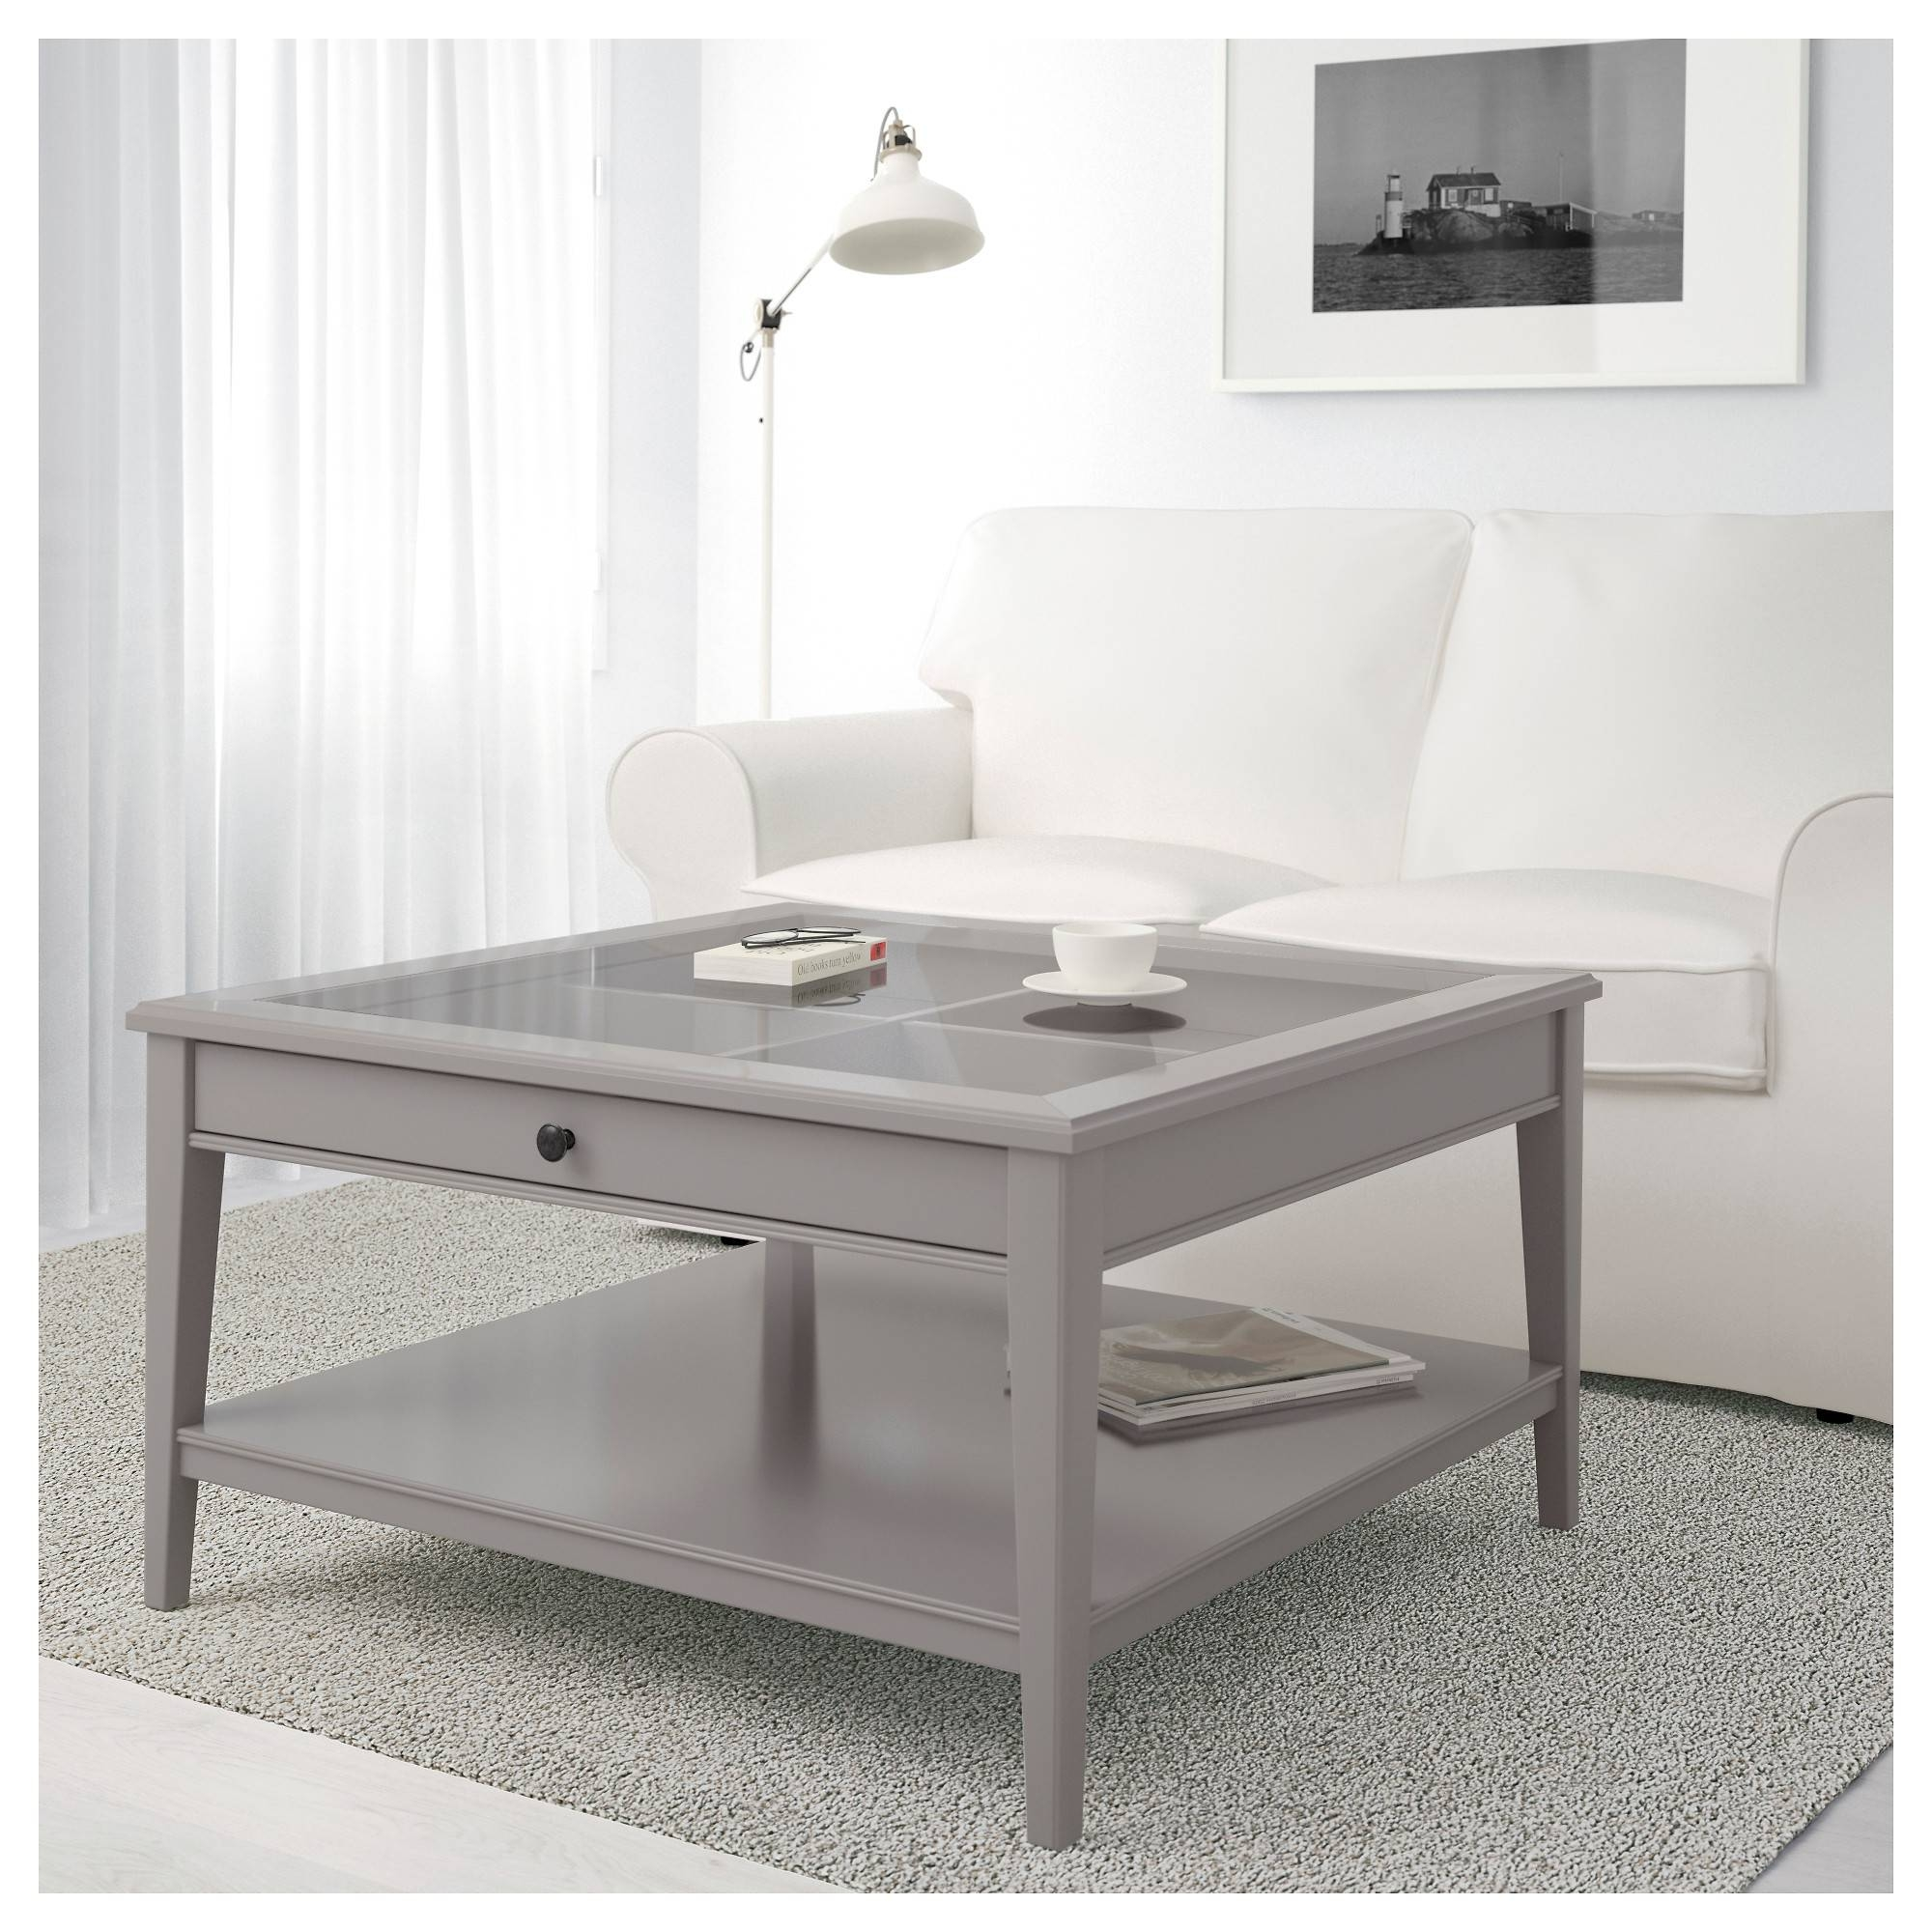 Liatorp Coffee Table - Gray/glass - Ikea inside Grey Coffee Tables (Image 23 of 30)